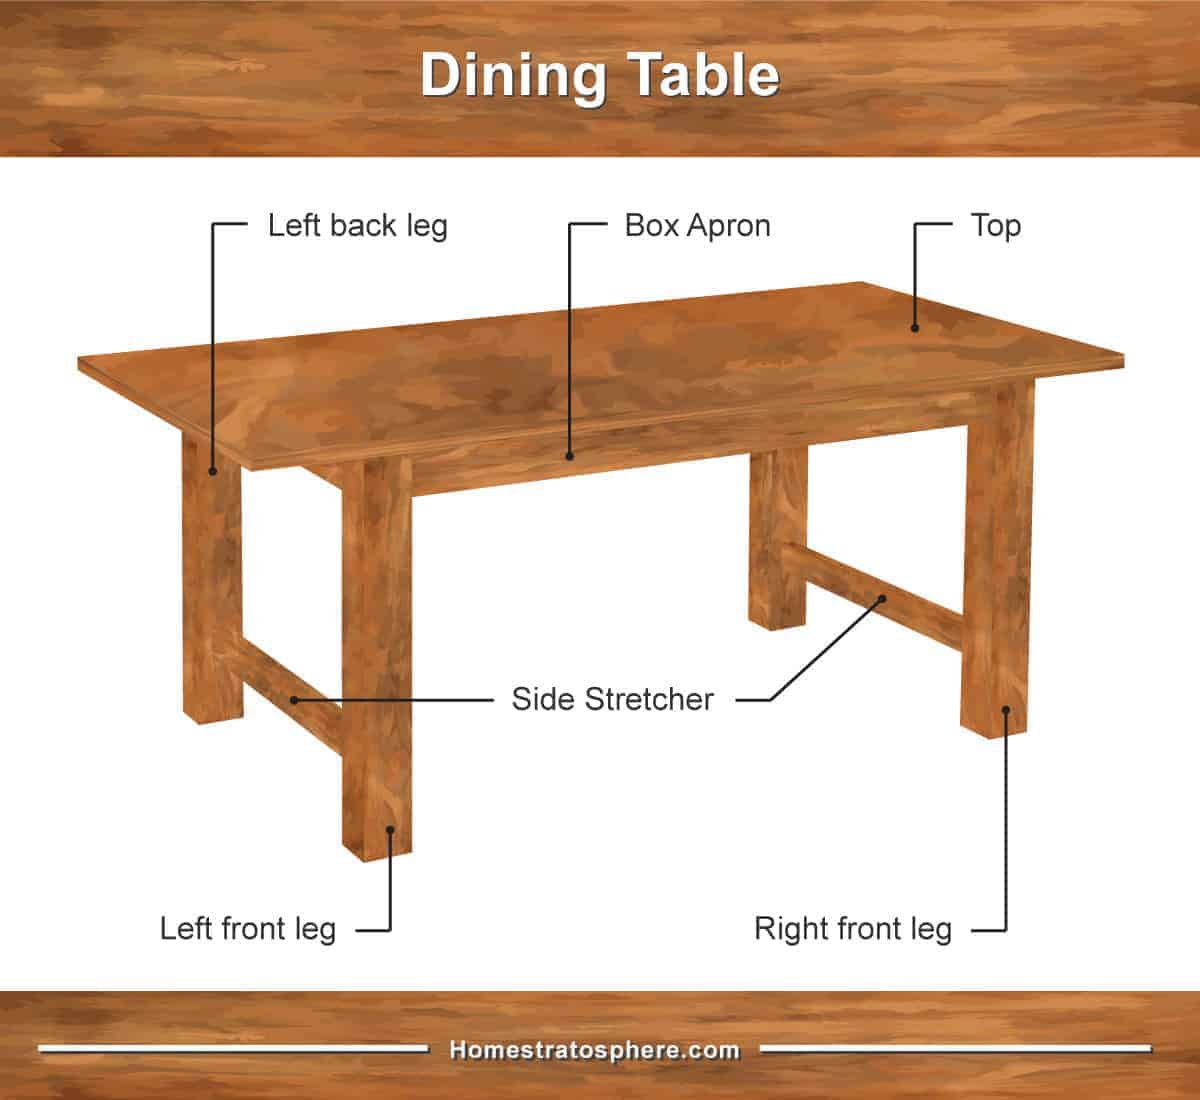 Parts of a Table (Dining Room and Coffee Table Diagrams)